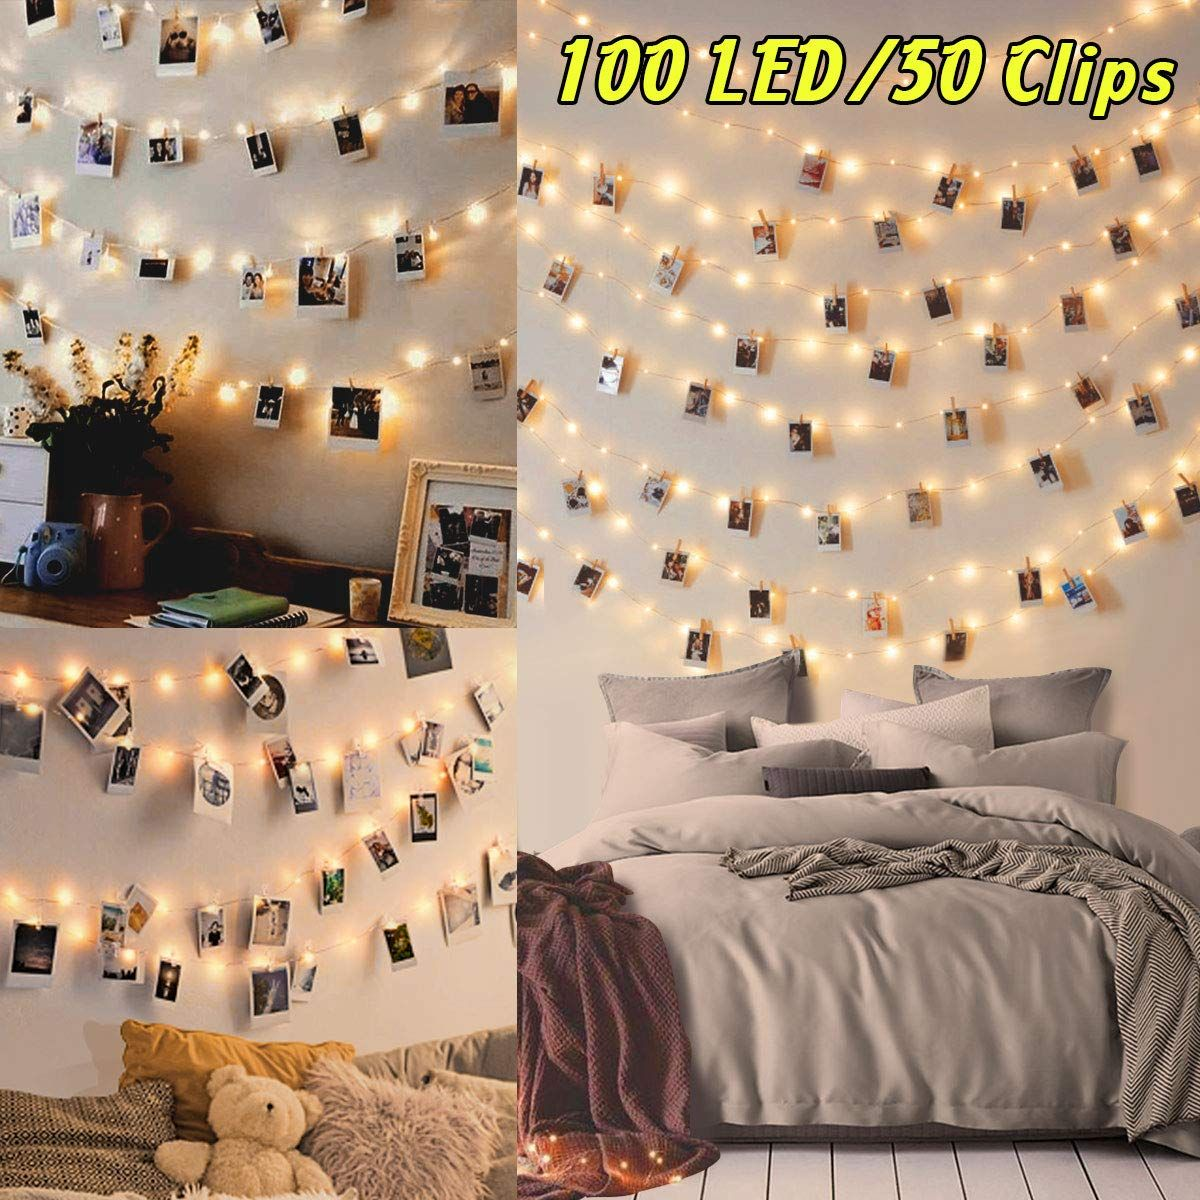 100led Luci Led Per Foto Polaroid 10m Lucine Led Decorative Per Camere Porta Foto Luci Con Mo Camera Da Letto Chiara Decorazioni Interni Illuminazione Camera